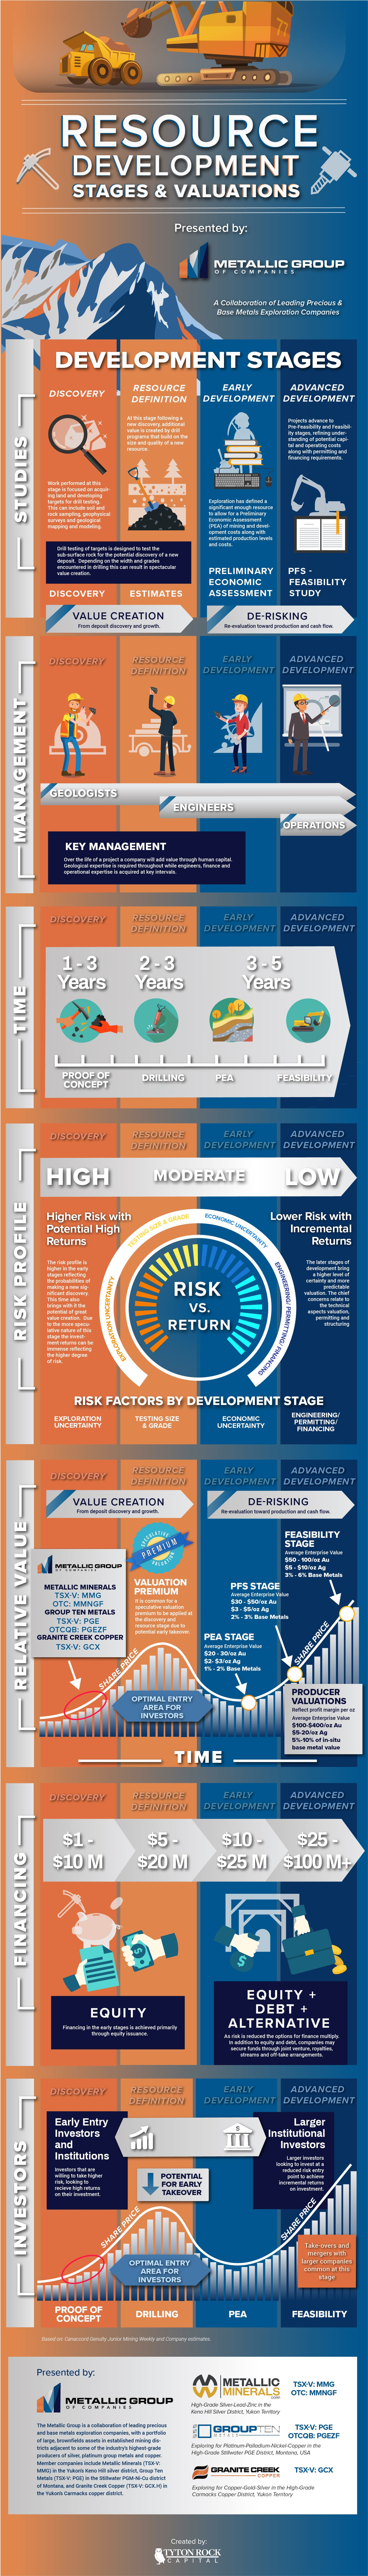 Metallic Group of Companies Resource Development Stages and Valuation